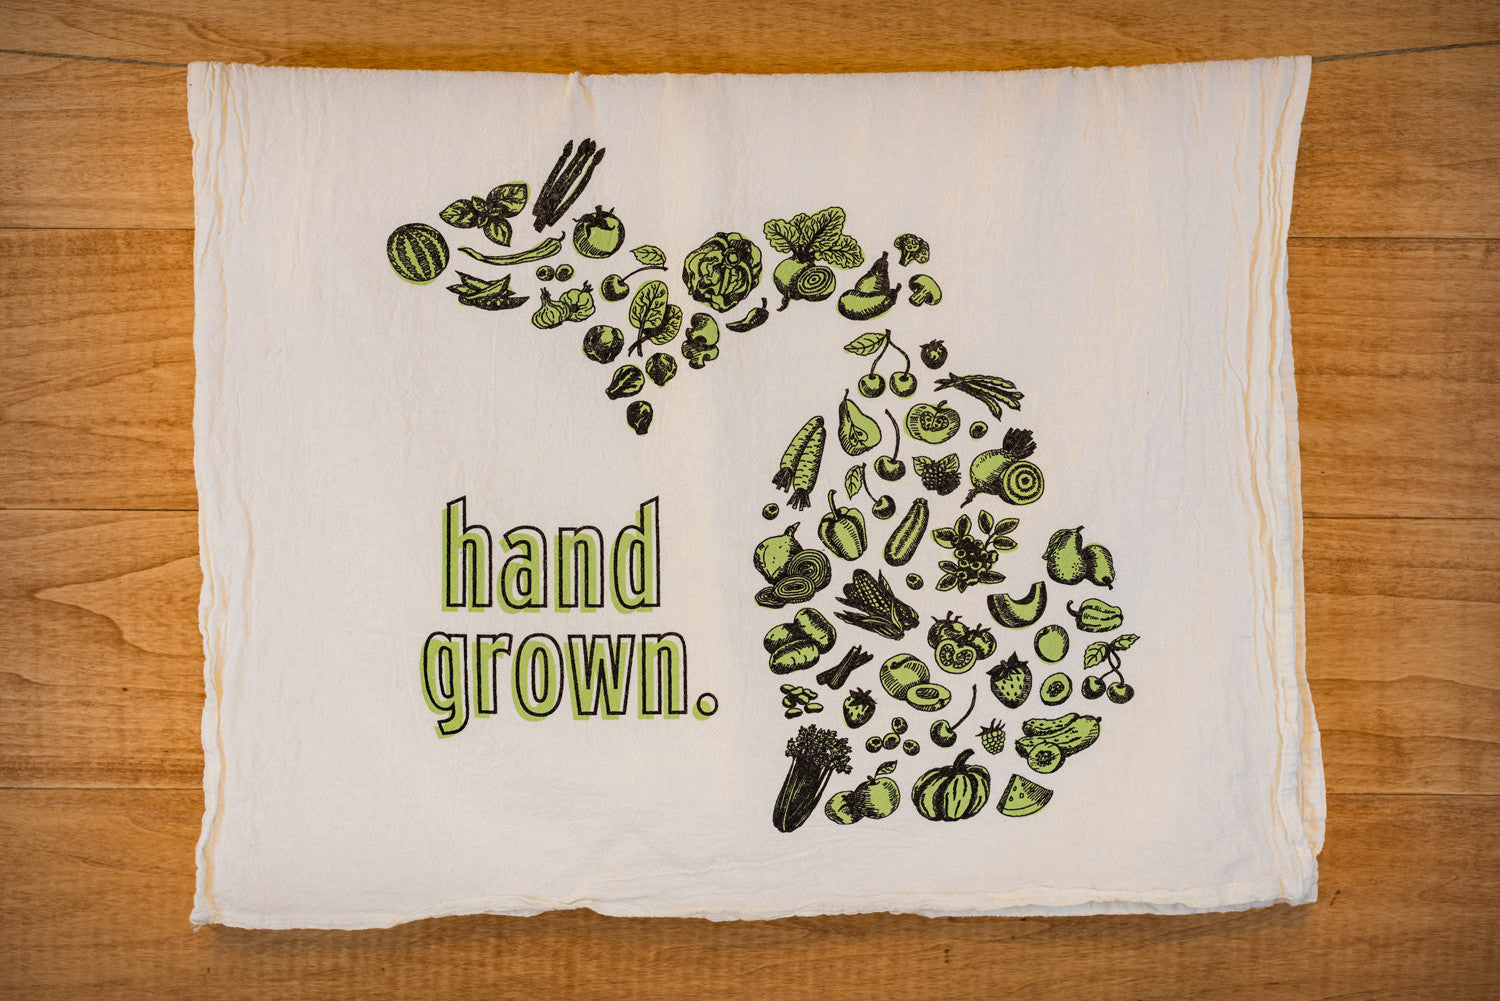 Michigan Awesome hand grown towels